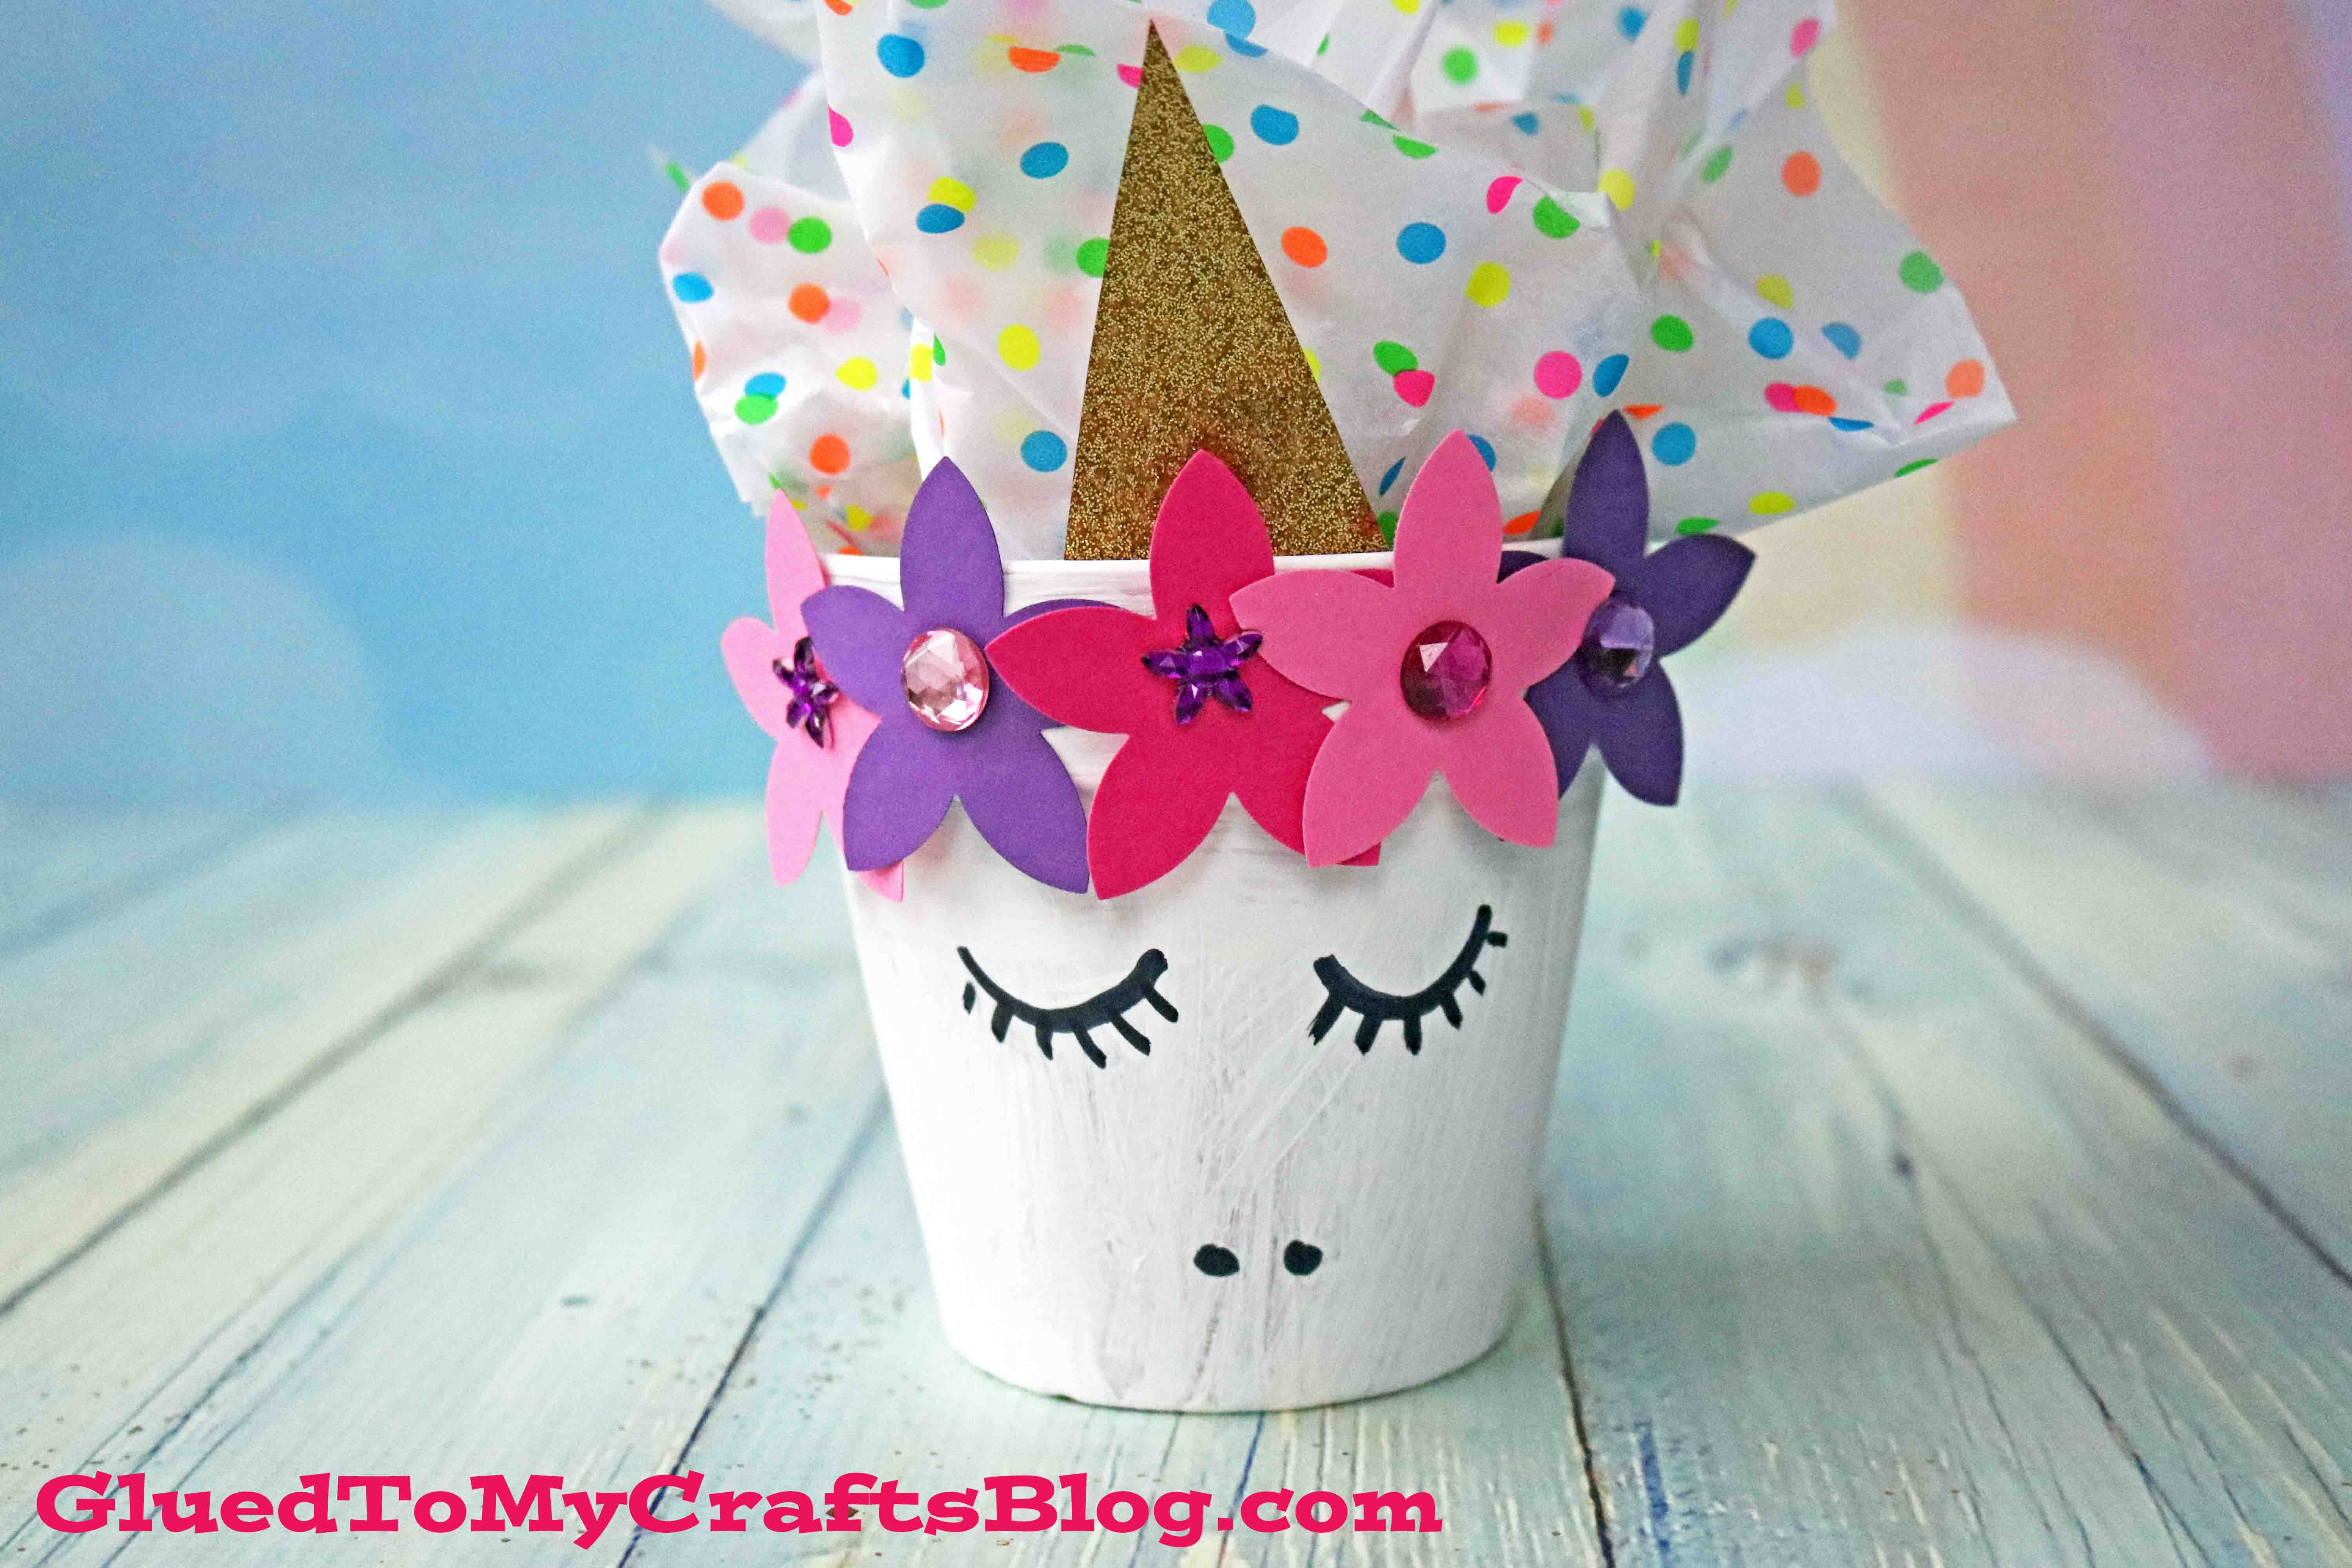 How To Decorate Your Home For Thanksgiving Terra Cotta Pot Unicorn Craft Glued To My Crafts